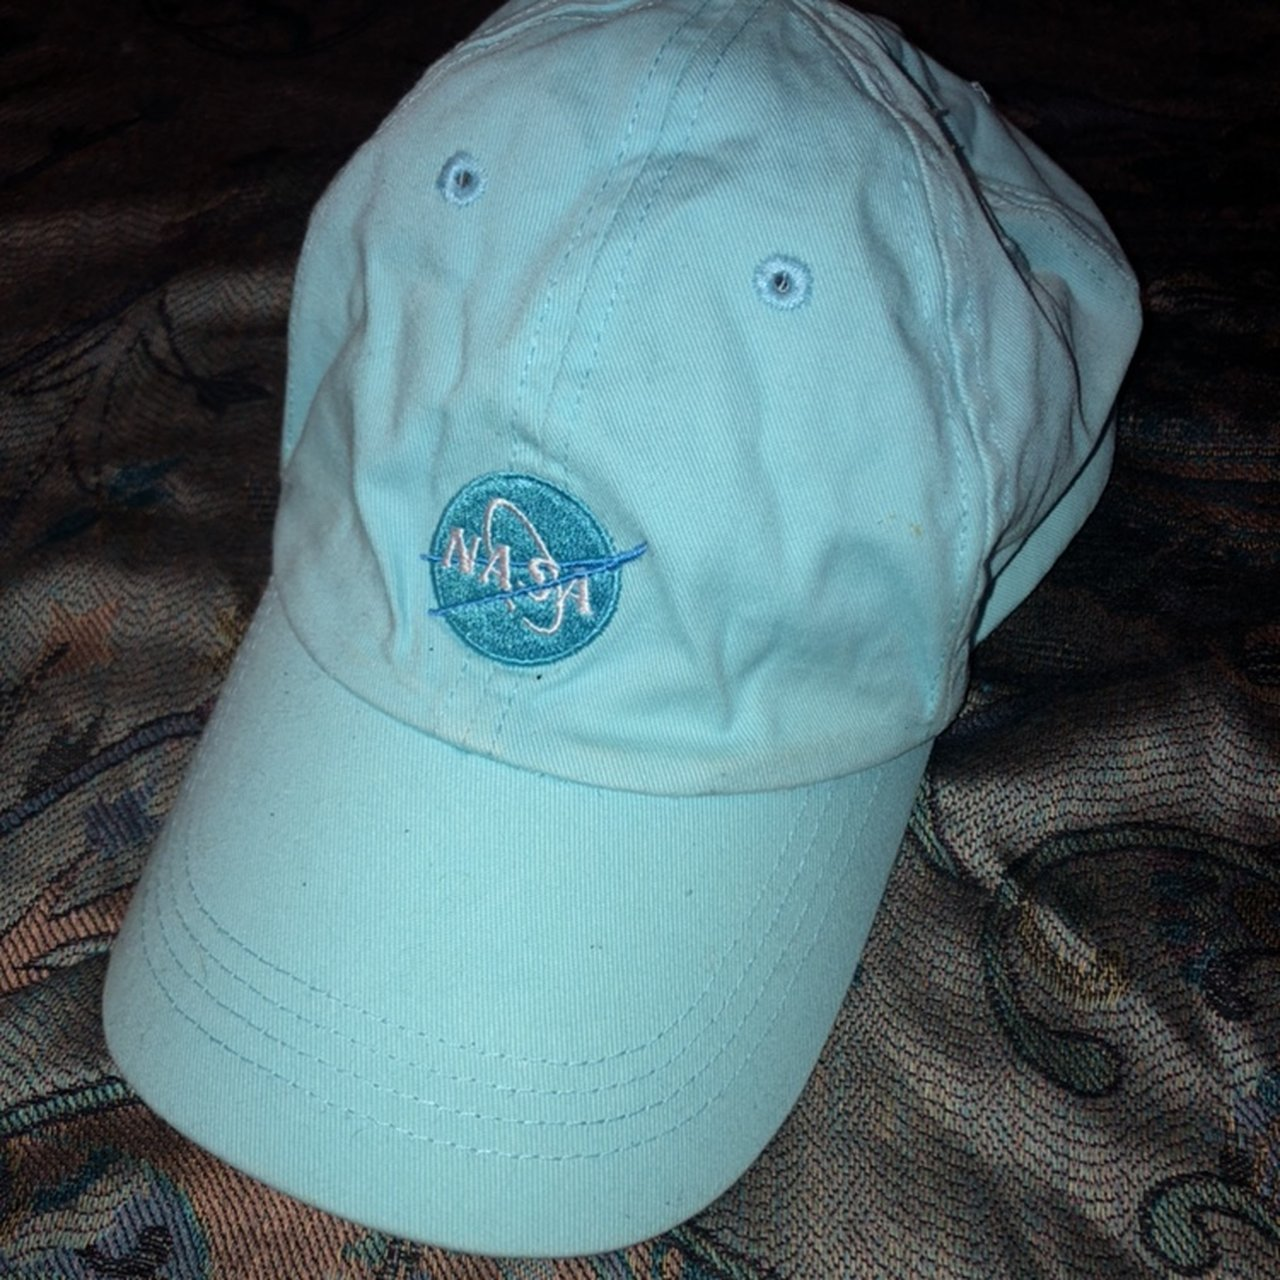 1bd4cd32289 Beige Polo hat Adjustable Never used.  10.50 · Very cute baby blue NASA